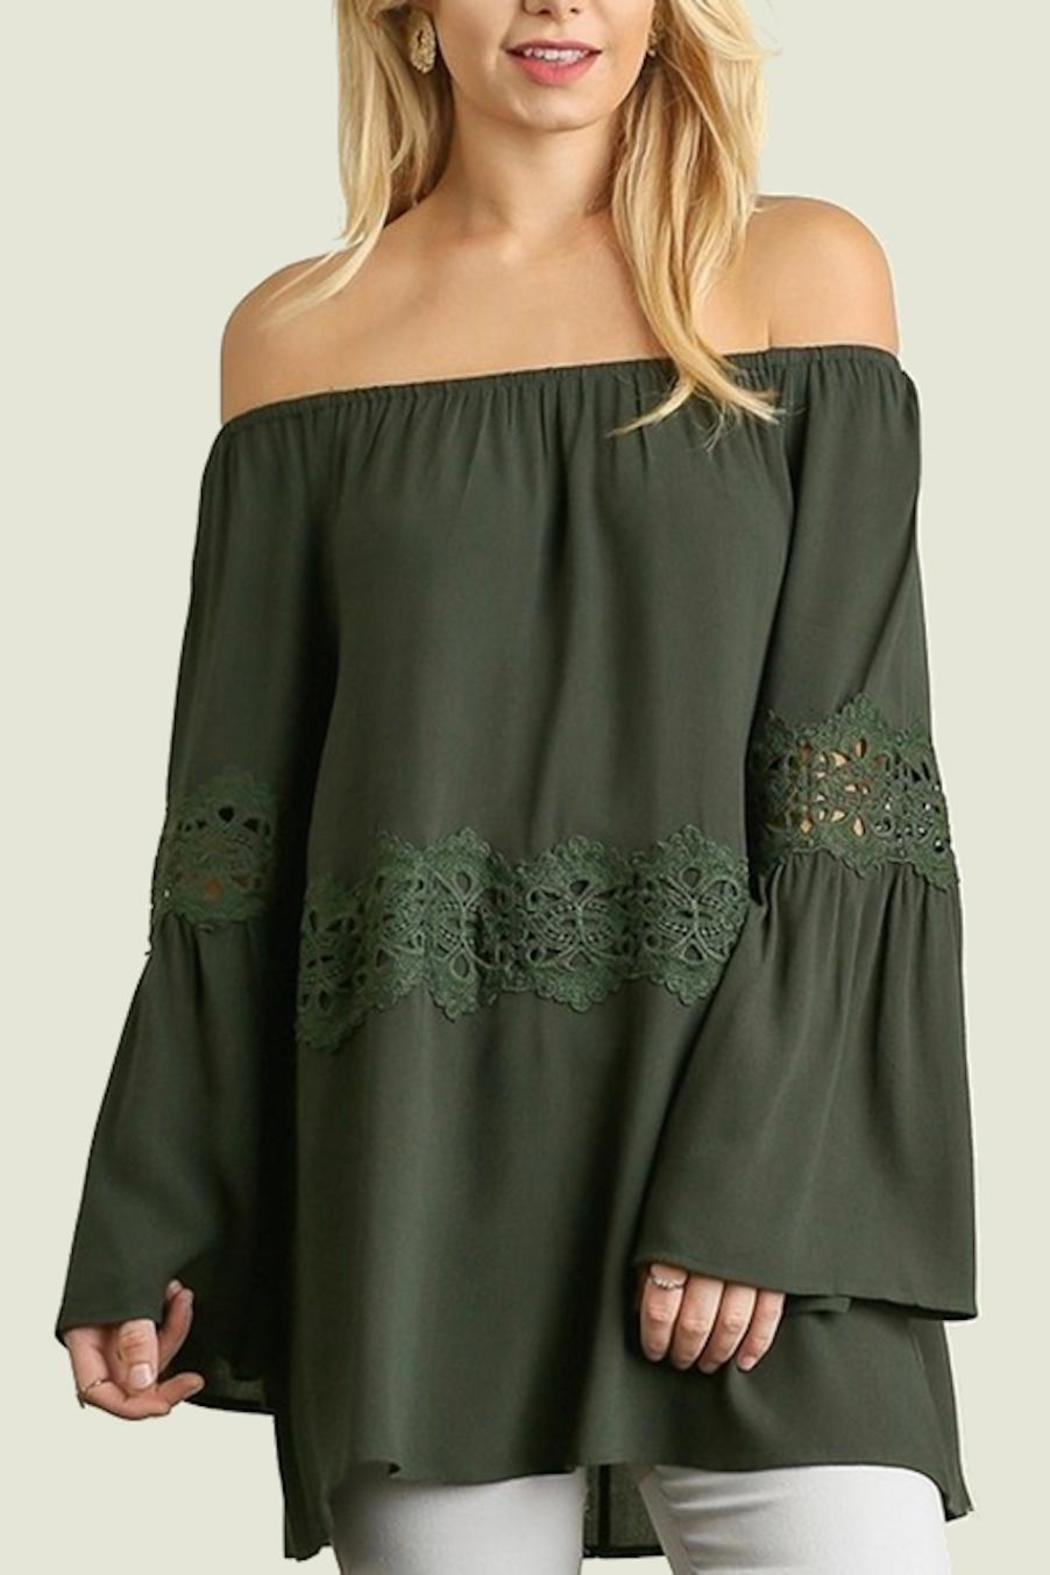 People Outfitter Off Shoulder Top - Main Image